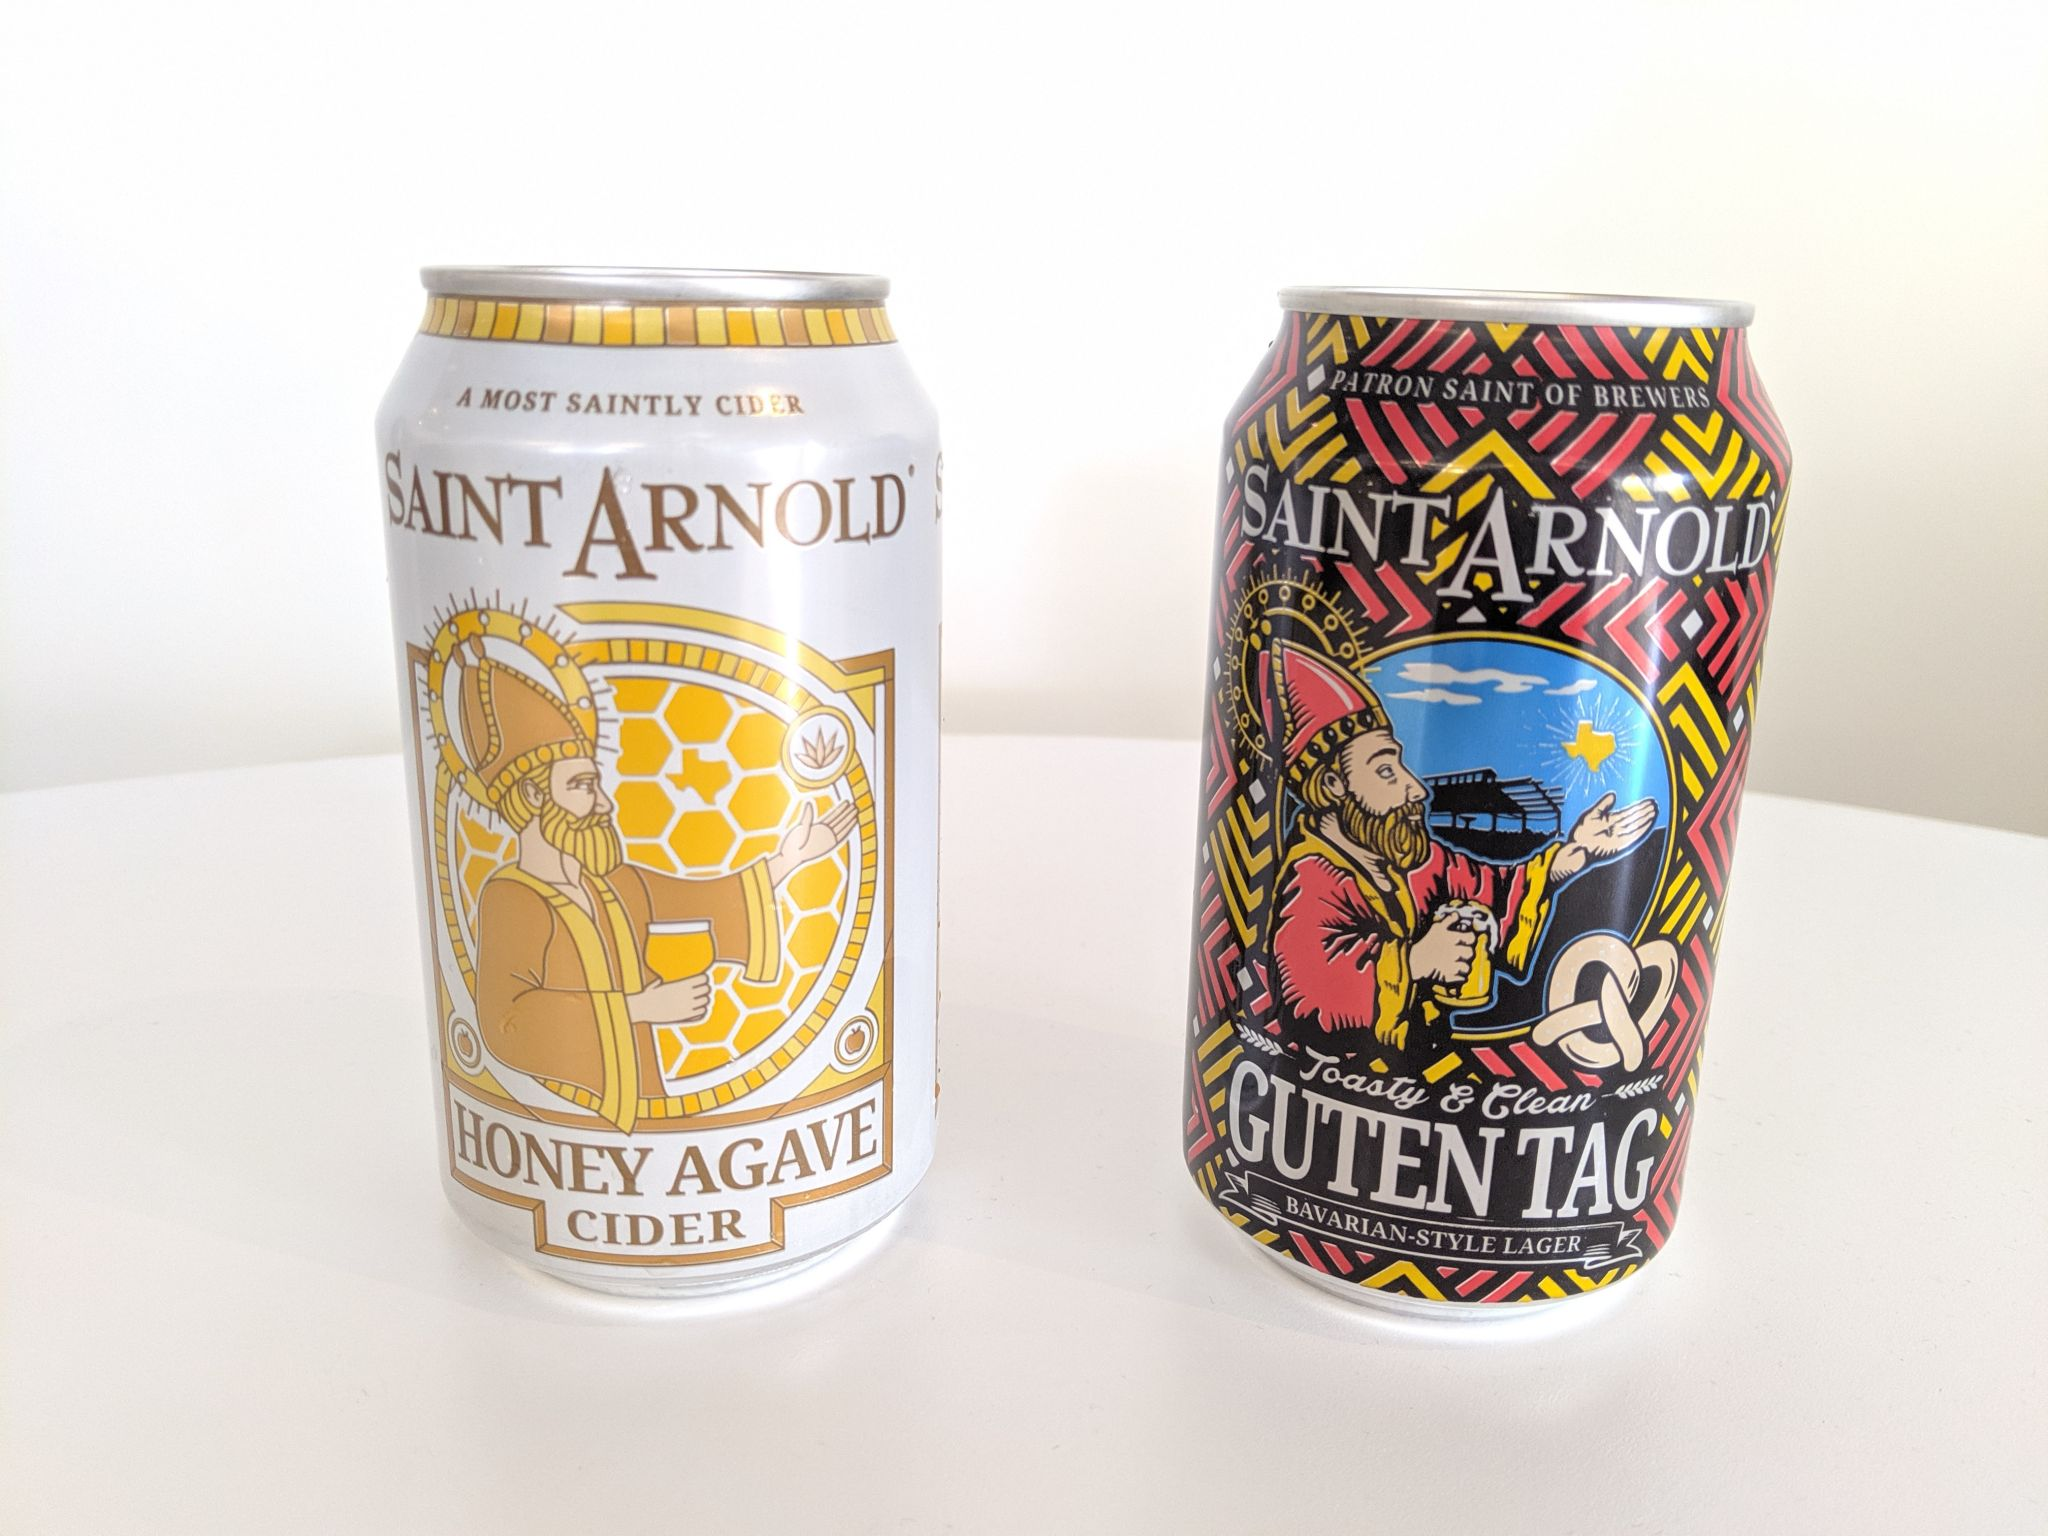 Saint Arnold adds two new options to year-round lineup